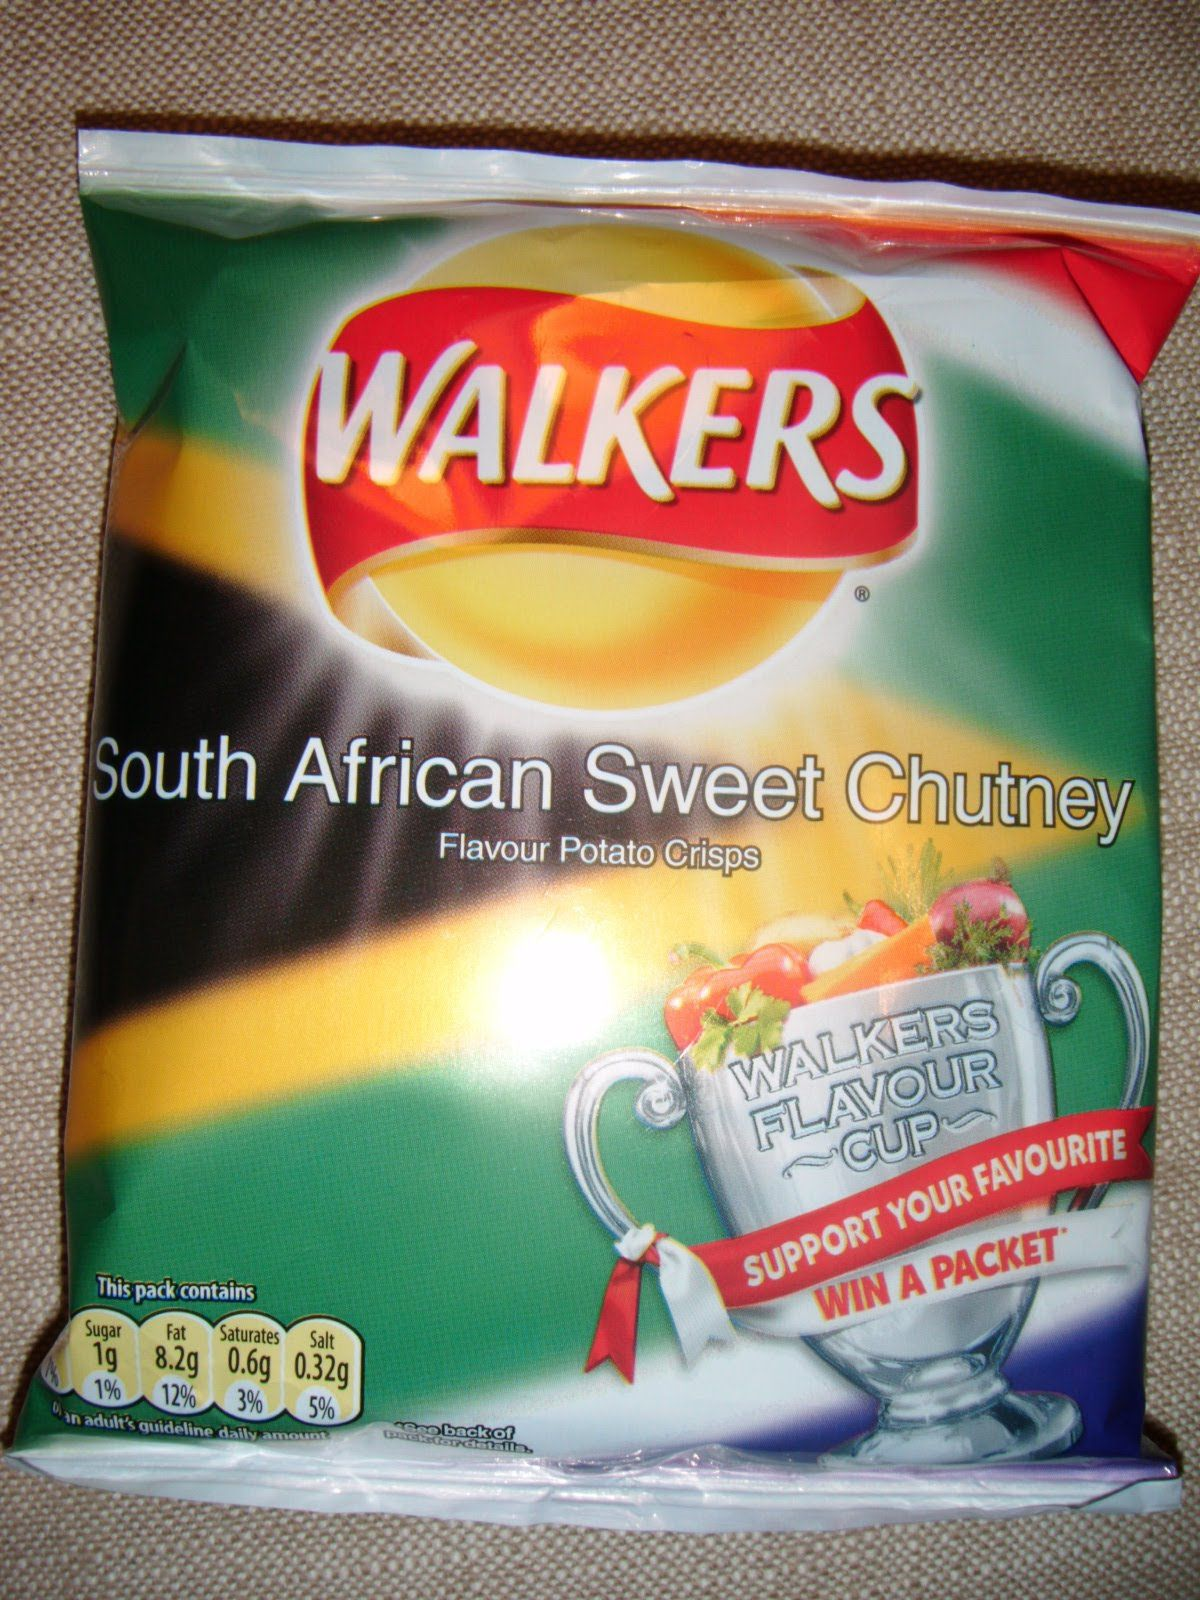 south african sweet chutney flavors lays chips south african recipes south african sweet chutney flavors